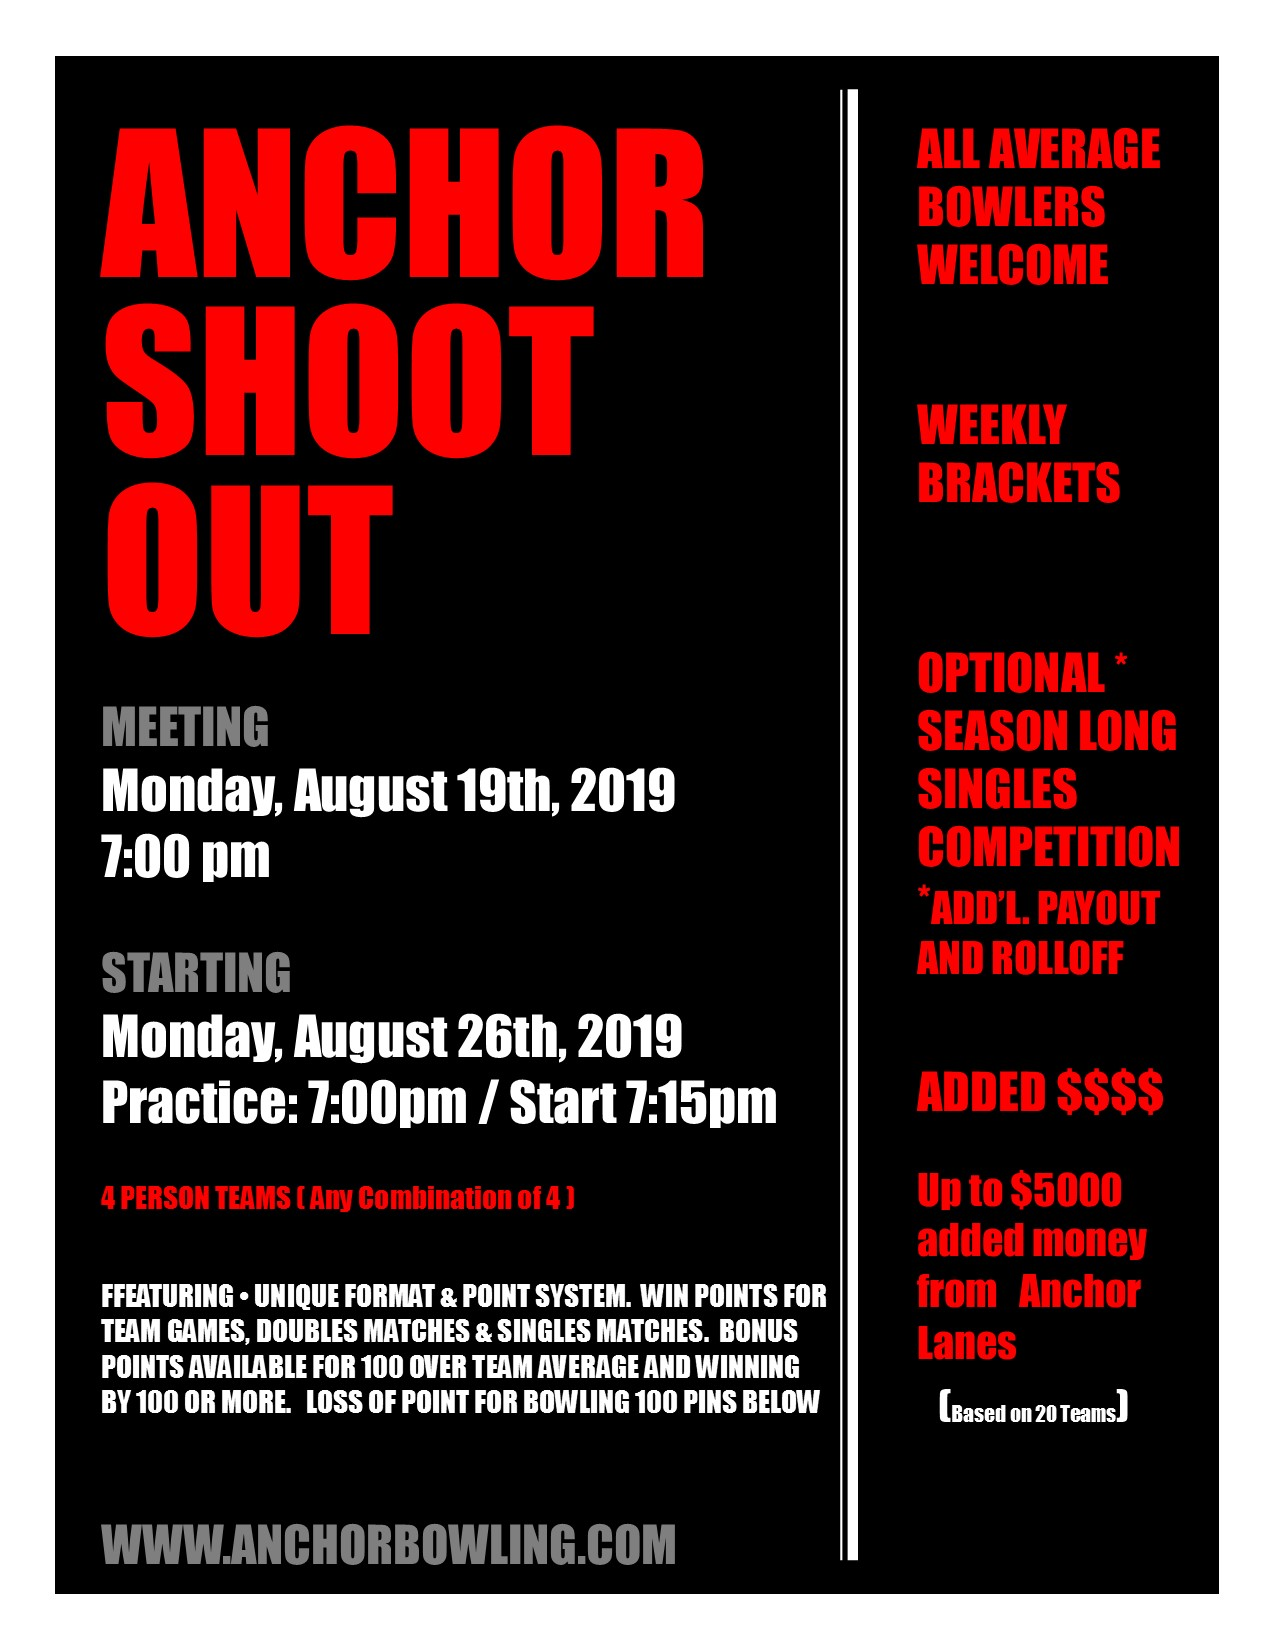 Sign up for the Anchor Shootout Today!  Organizational Meeting Monday, August 19th at 7:00pm